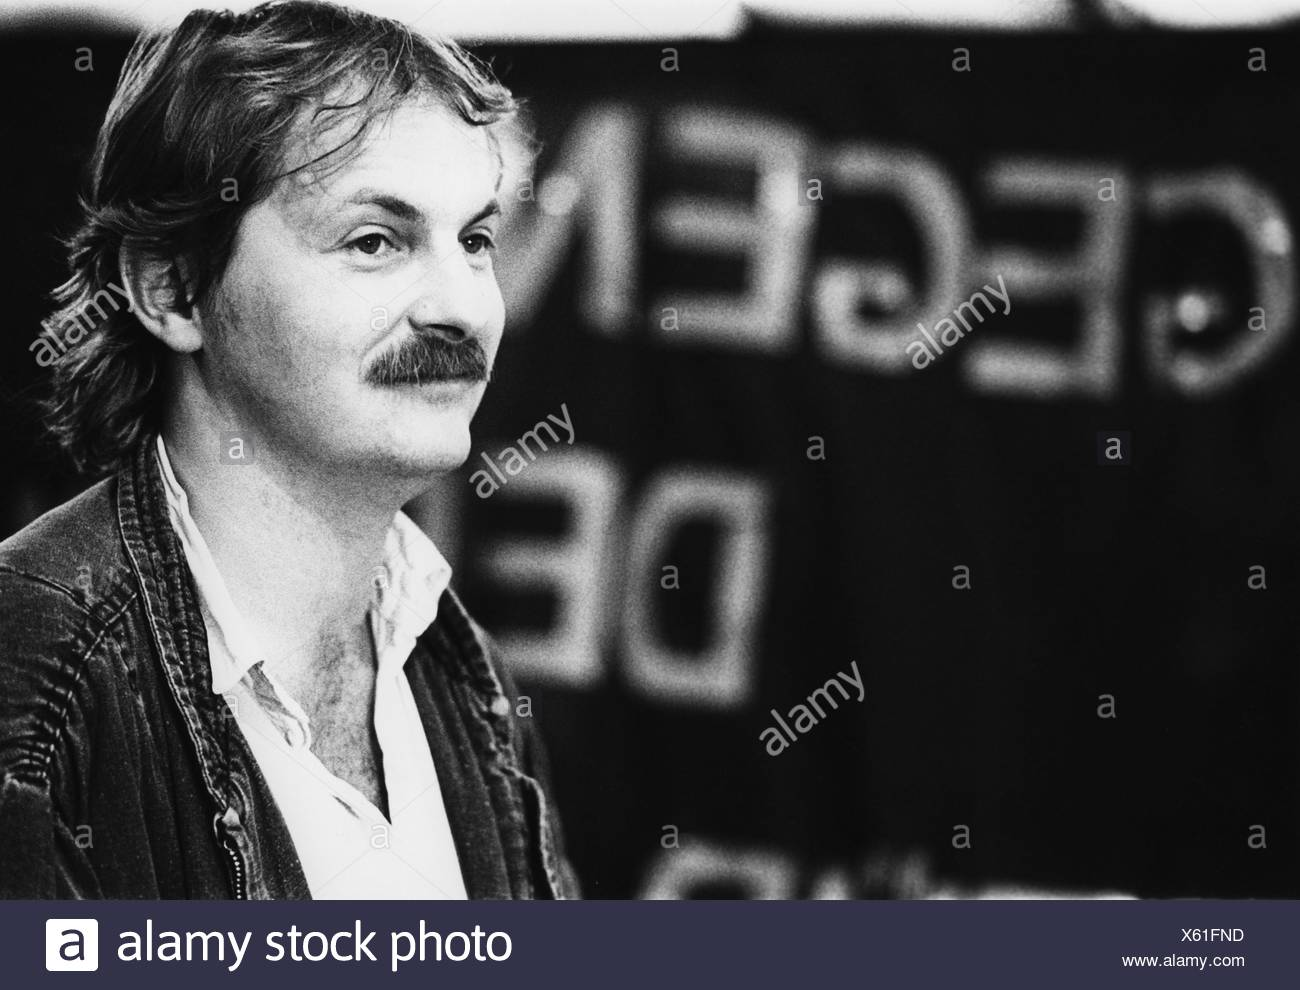 Kleinert, Hubert, German politician (The Greens), portrait, national party convention of the Greens, Hagen, Germany, 22. - 23.6. - Stock Image